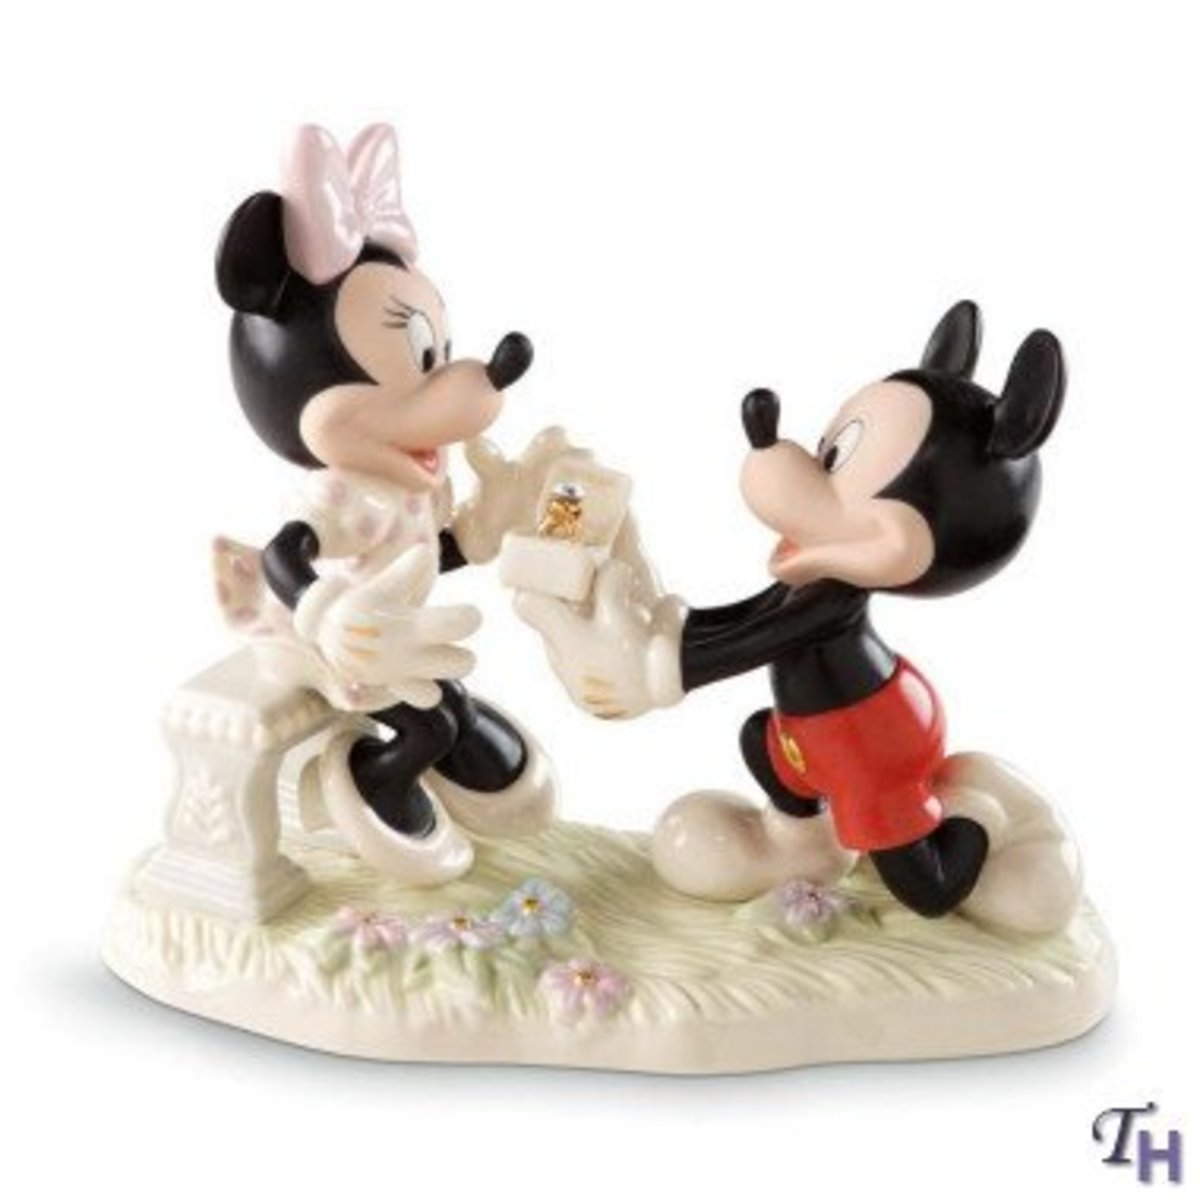 Will you marry me? Mickey to Minnie proposal